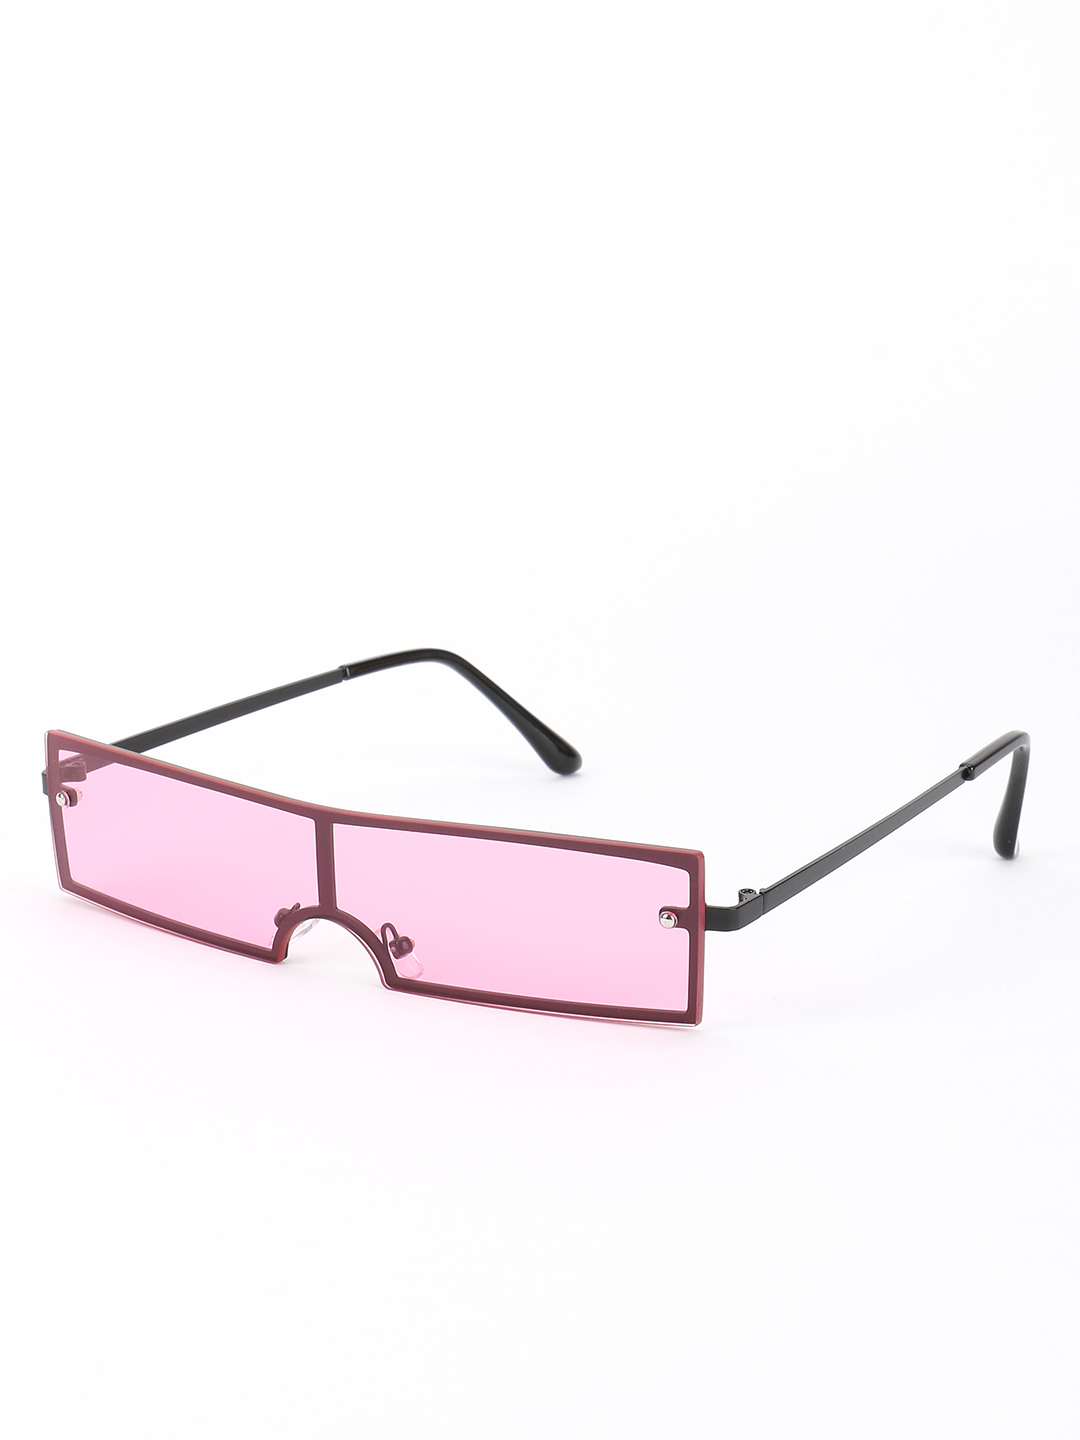 Sneak-a-Peek Pink Rectangular Futuristic Classic Sunglasses 1